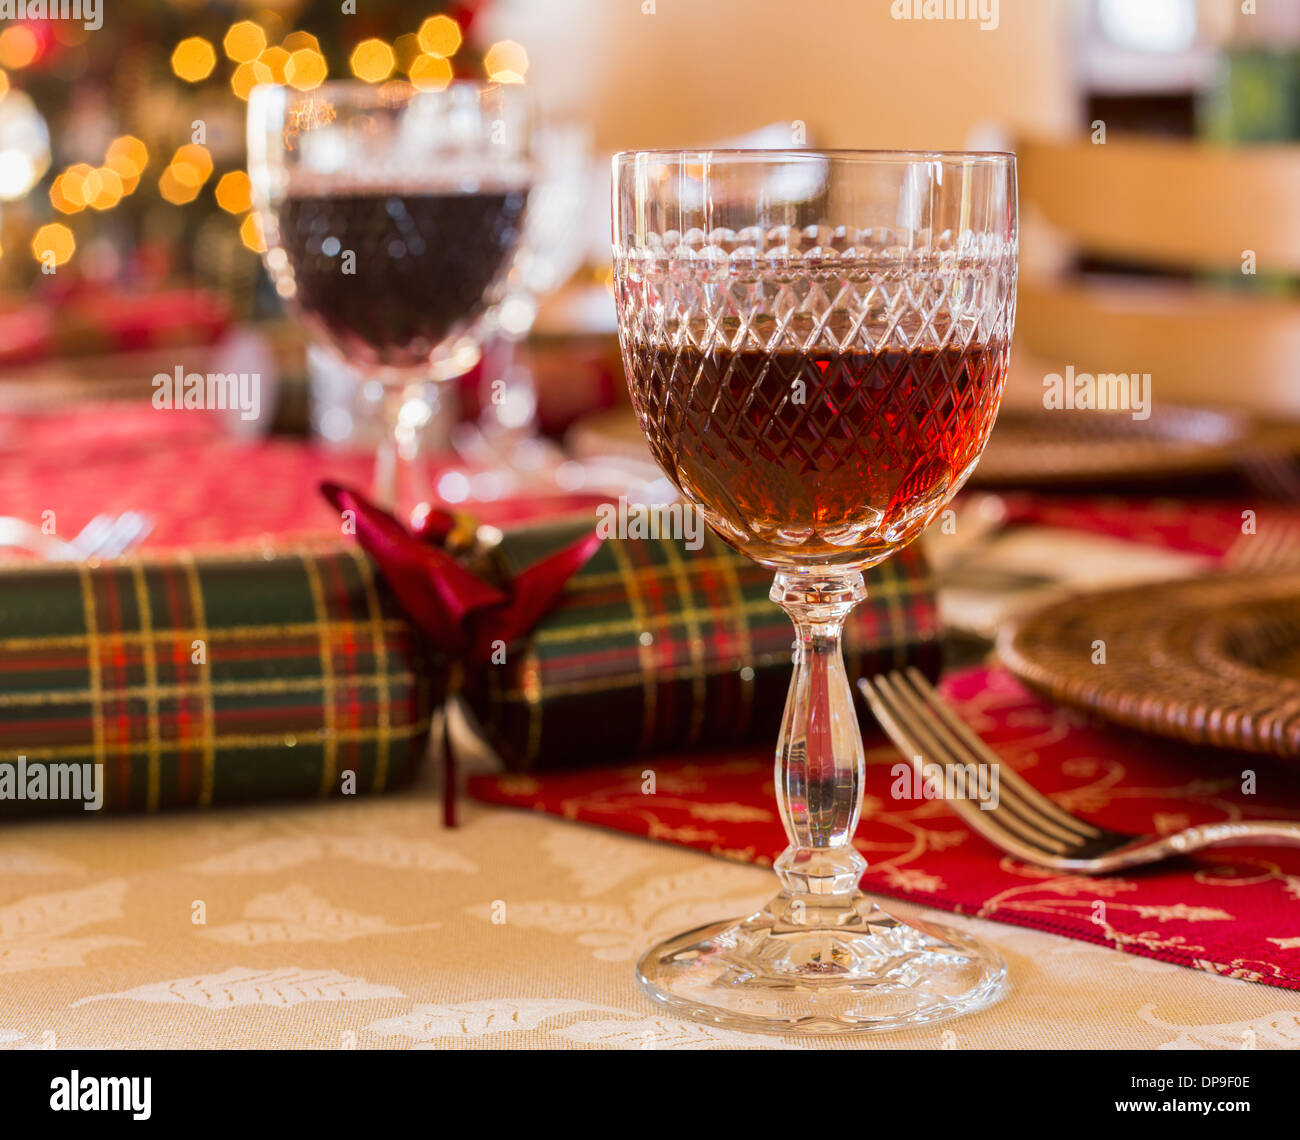 Glass of sherry on a table set for Christmas lunch with crackers and decorated tree in background Stock Photo